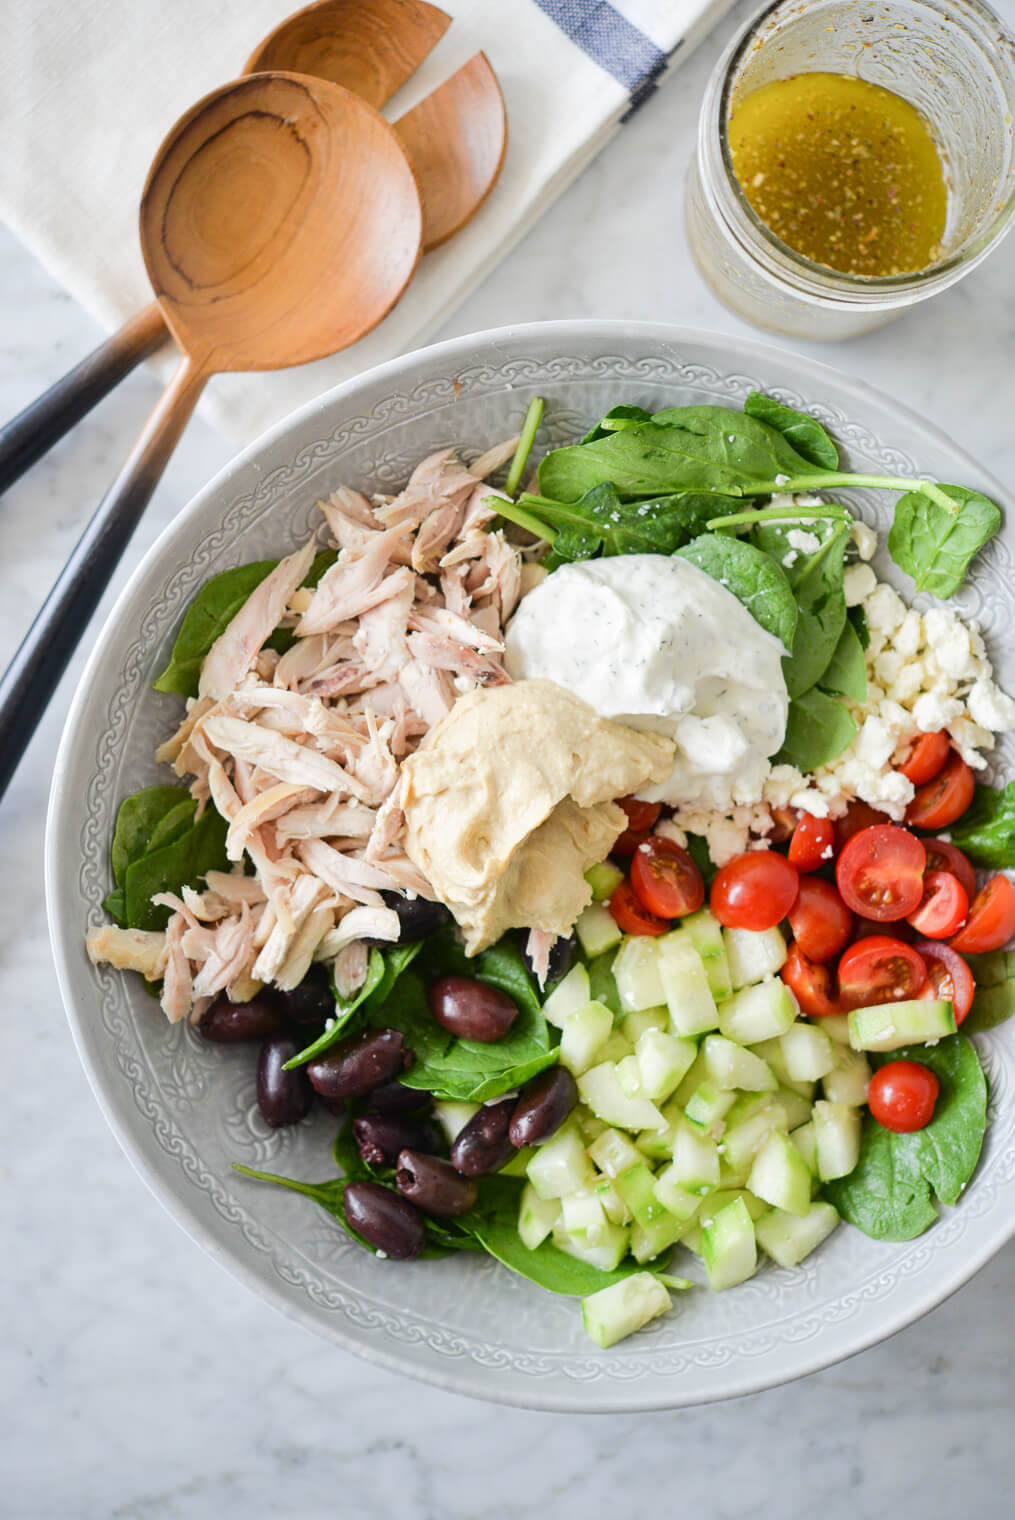 a bed of spinach topped with halved tomatoes, feta cheese, cucumbers, olives, shredded chicken, hummus, and tzatziki sitting next to a jar of homemade greek dressing and two wooden serving spoons all on a marble surface